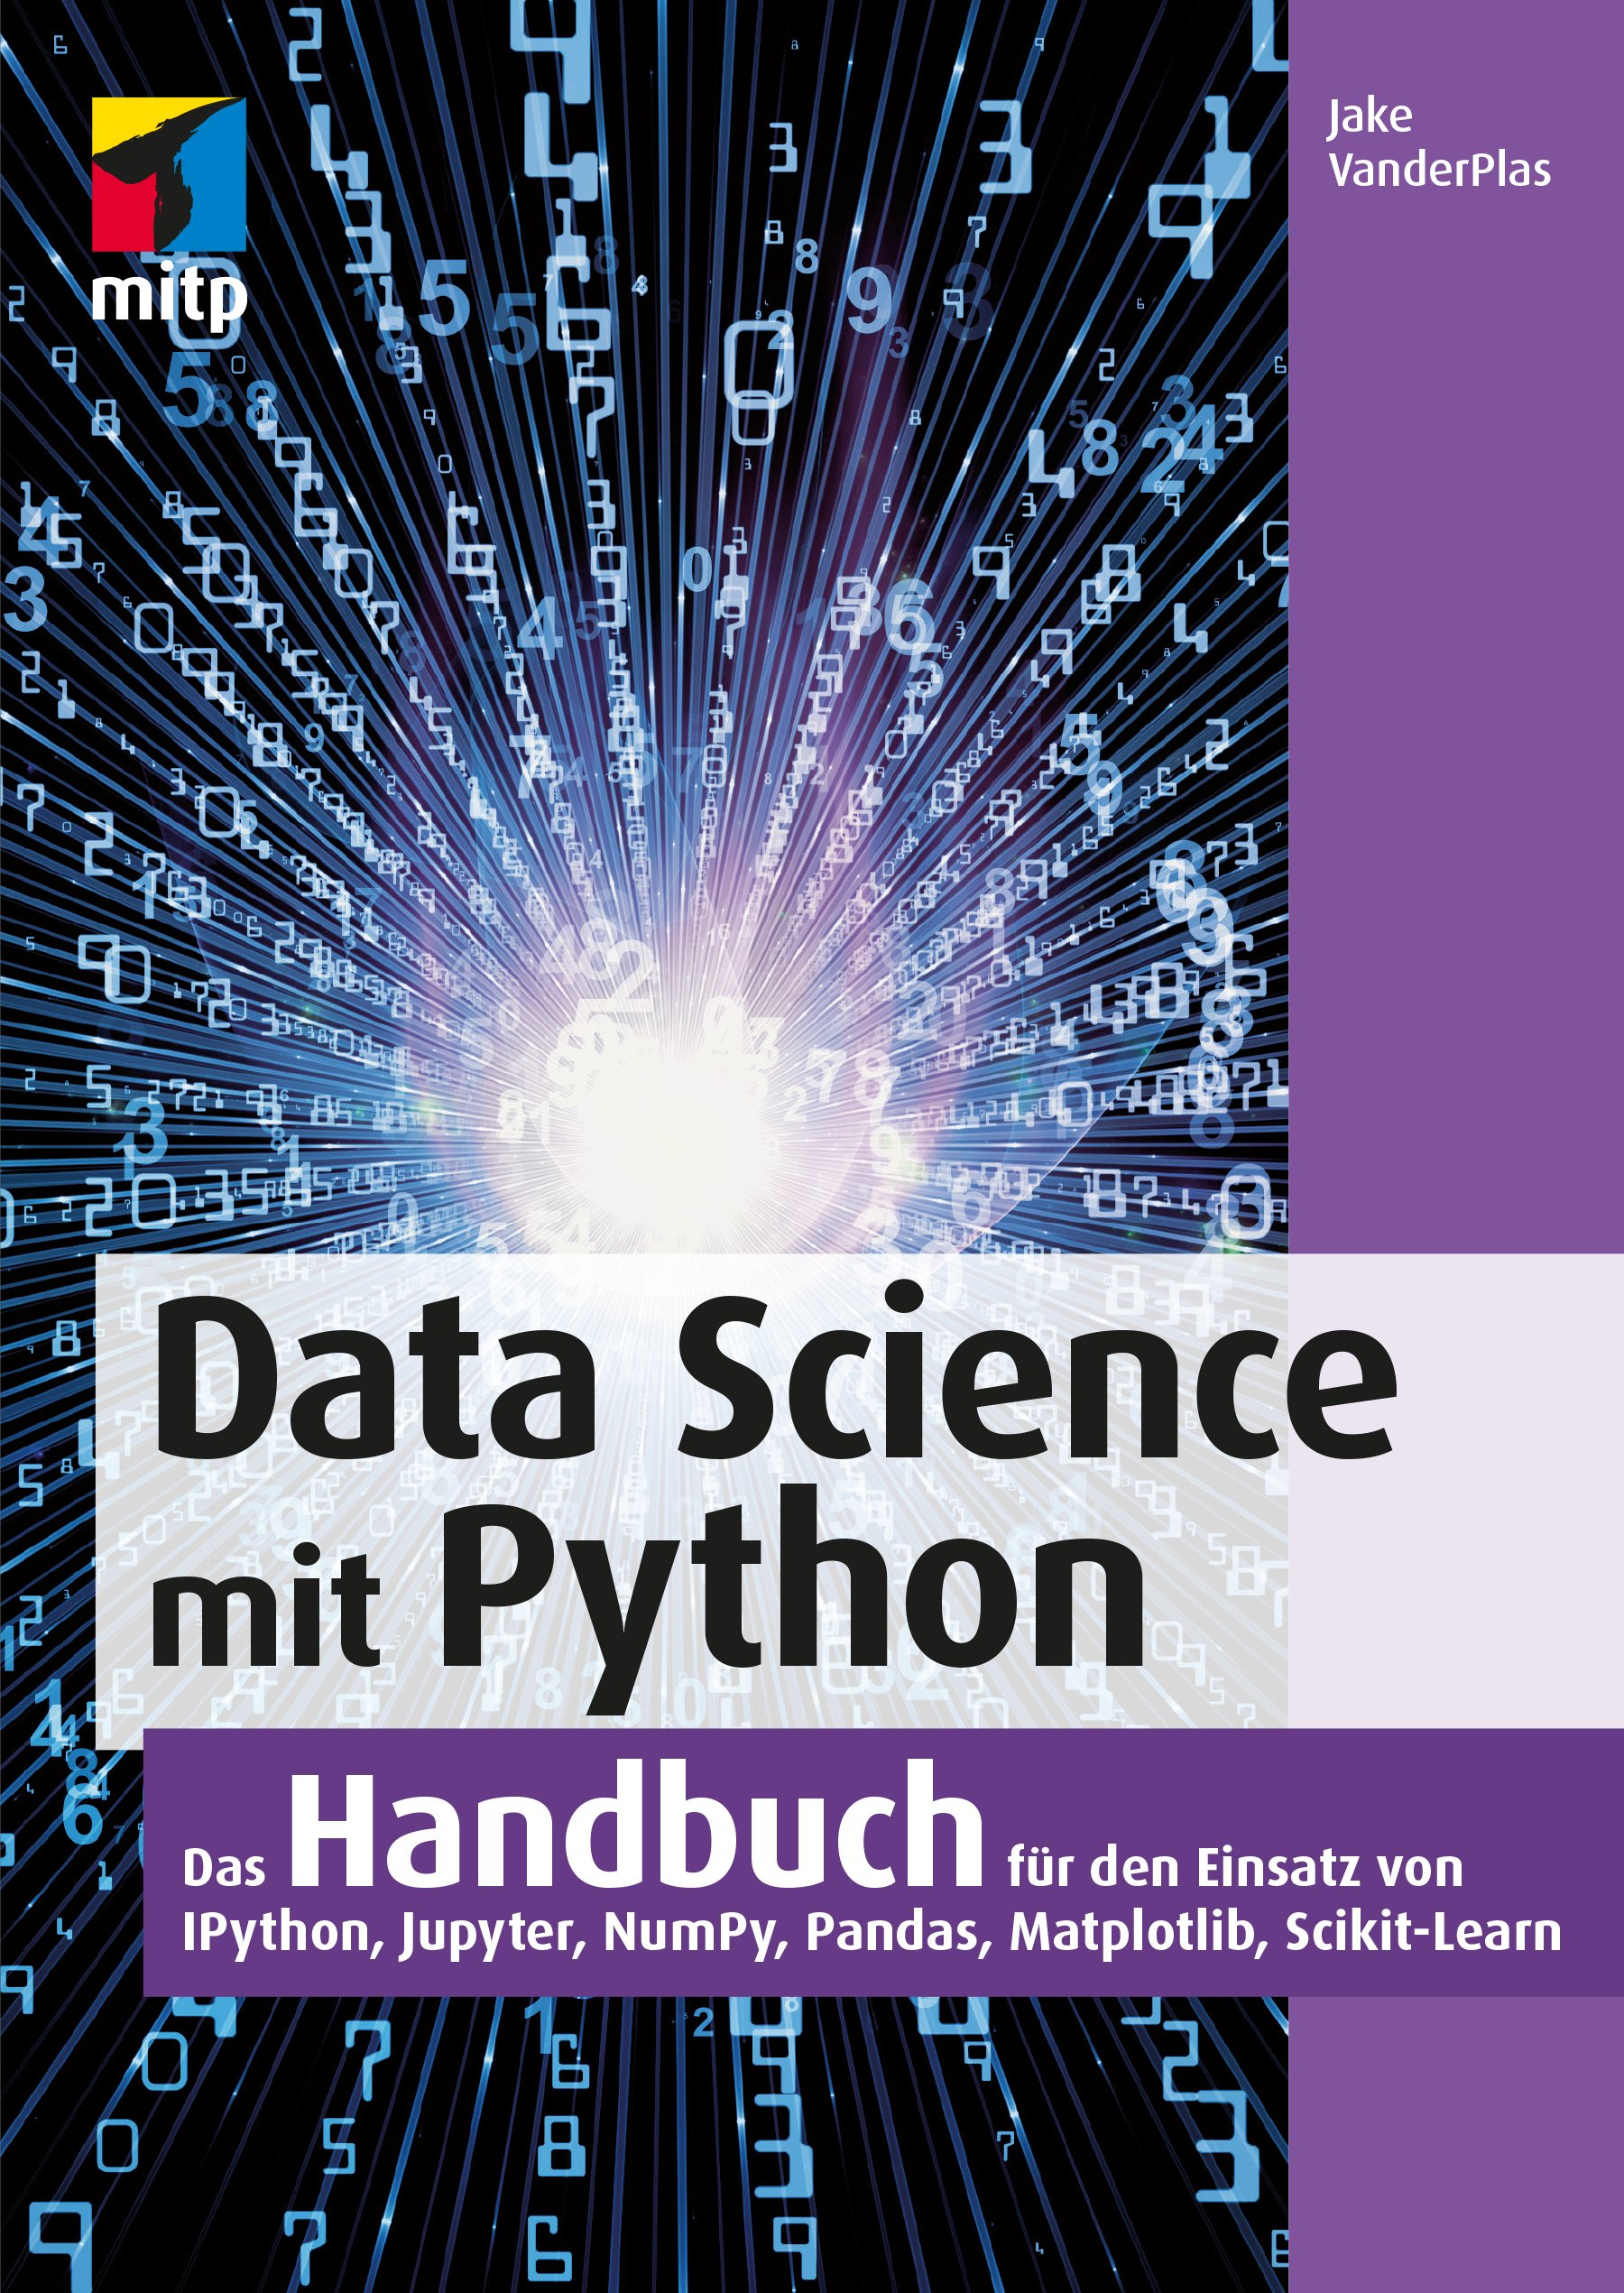 Data Science mit Python: Das Handbuch für den Einsatz von IPython, Jupyter, NumPy, Pandas, Matplotlib und Scikit-Learn (mitp Professional)) Broschiert – 30. November 2017 Jake VanderPlas 3958456952 Data Mining (EDV) Database